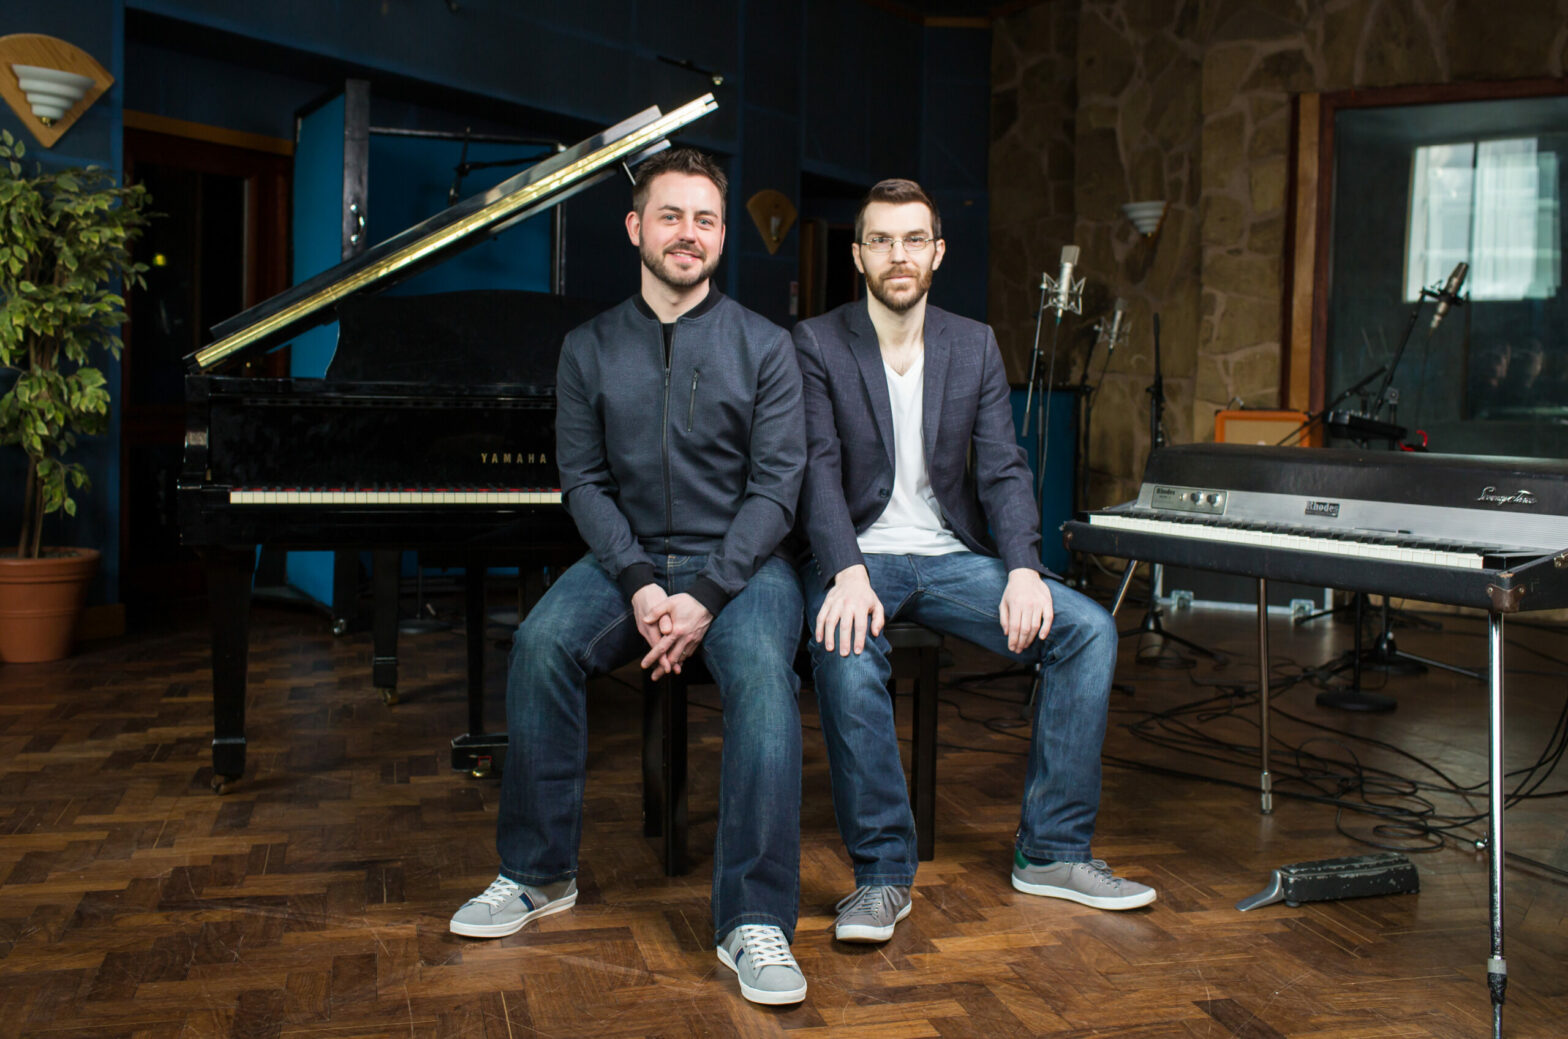 Simon Barber and Brian O'Connor, hosts of the Sodajerker podcast, sit on a piano bench in a room with a grand piano and keyboard.